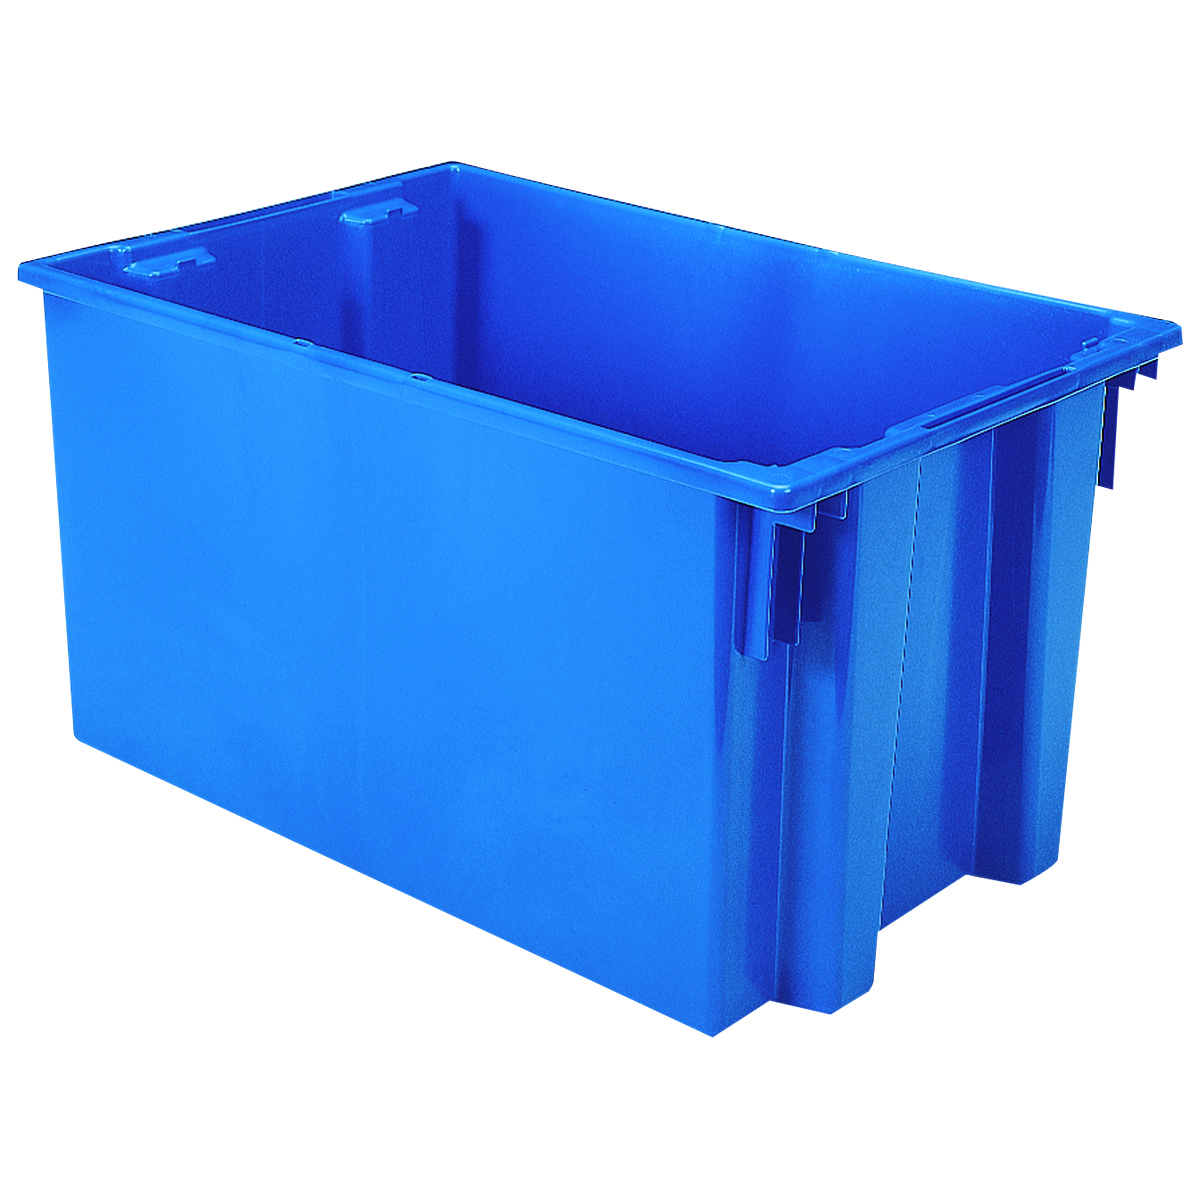 Nest & Stack Tote 29-1/2 x 19-1/2 x 15, Blue (35300BLUE).  This item sold in carton quantities of 3.